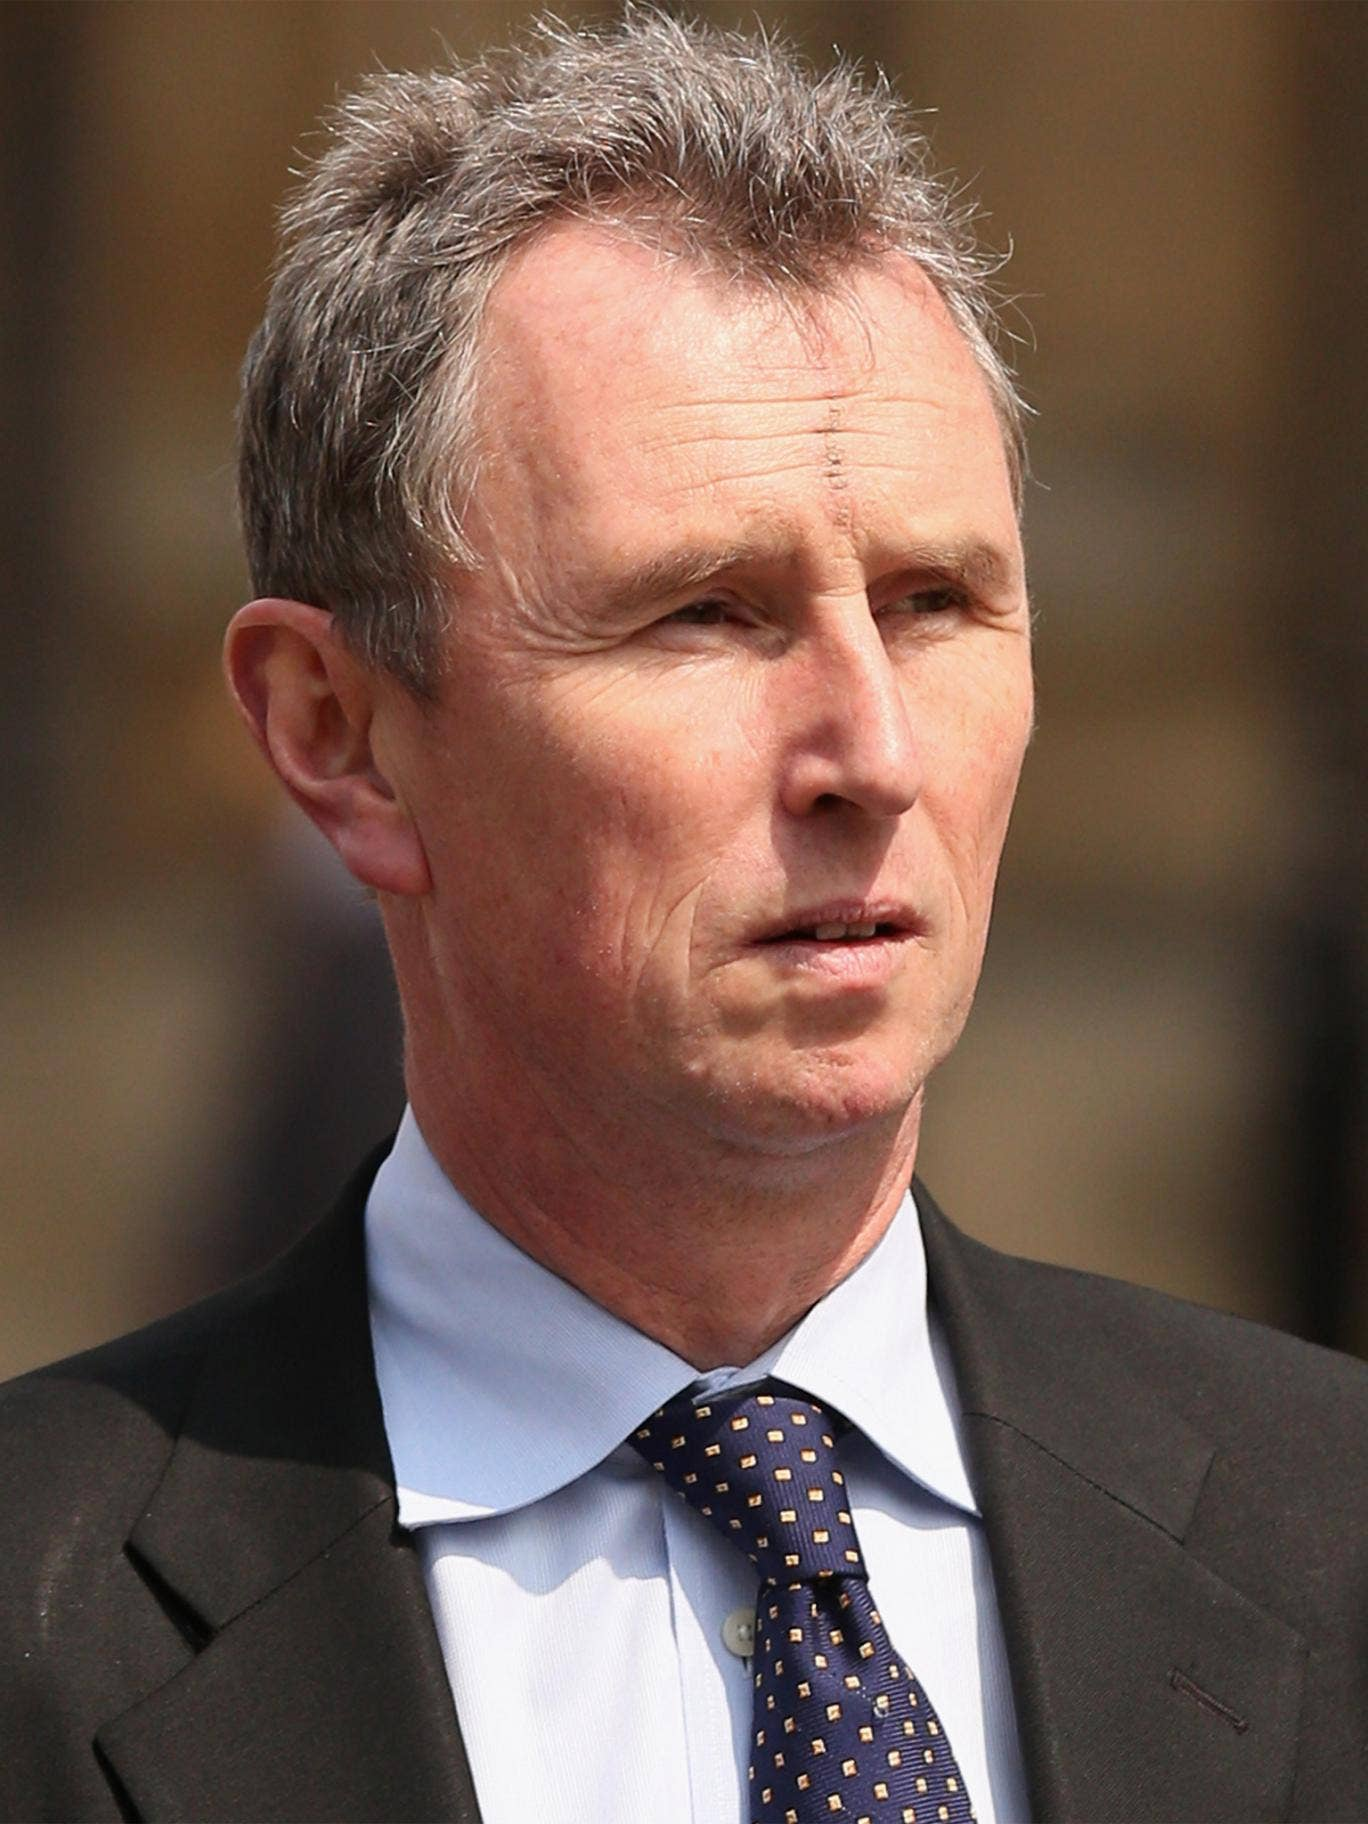 Nigel Evans has resigned from his role as House of Commons Deputy Speaker